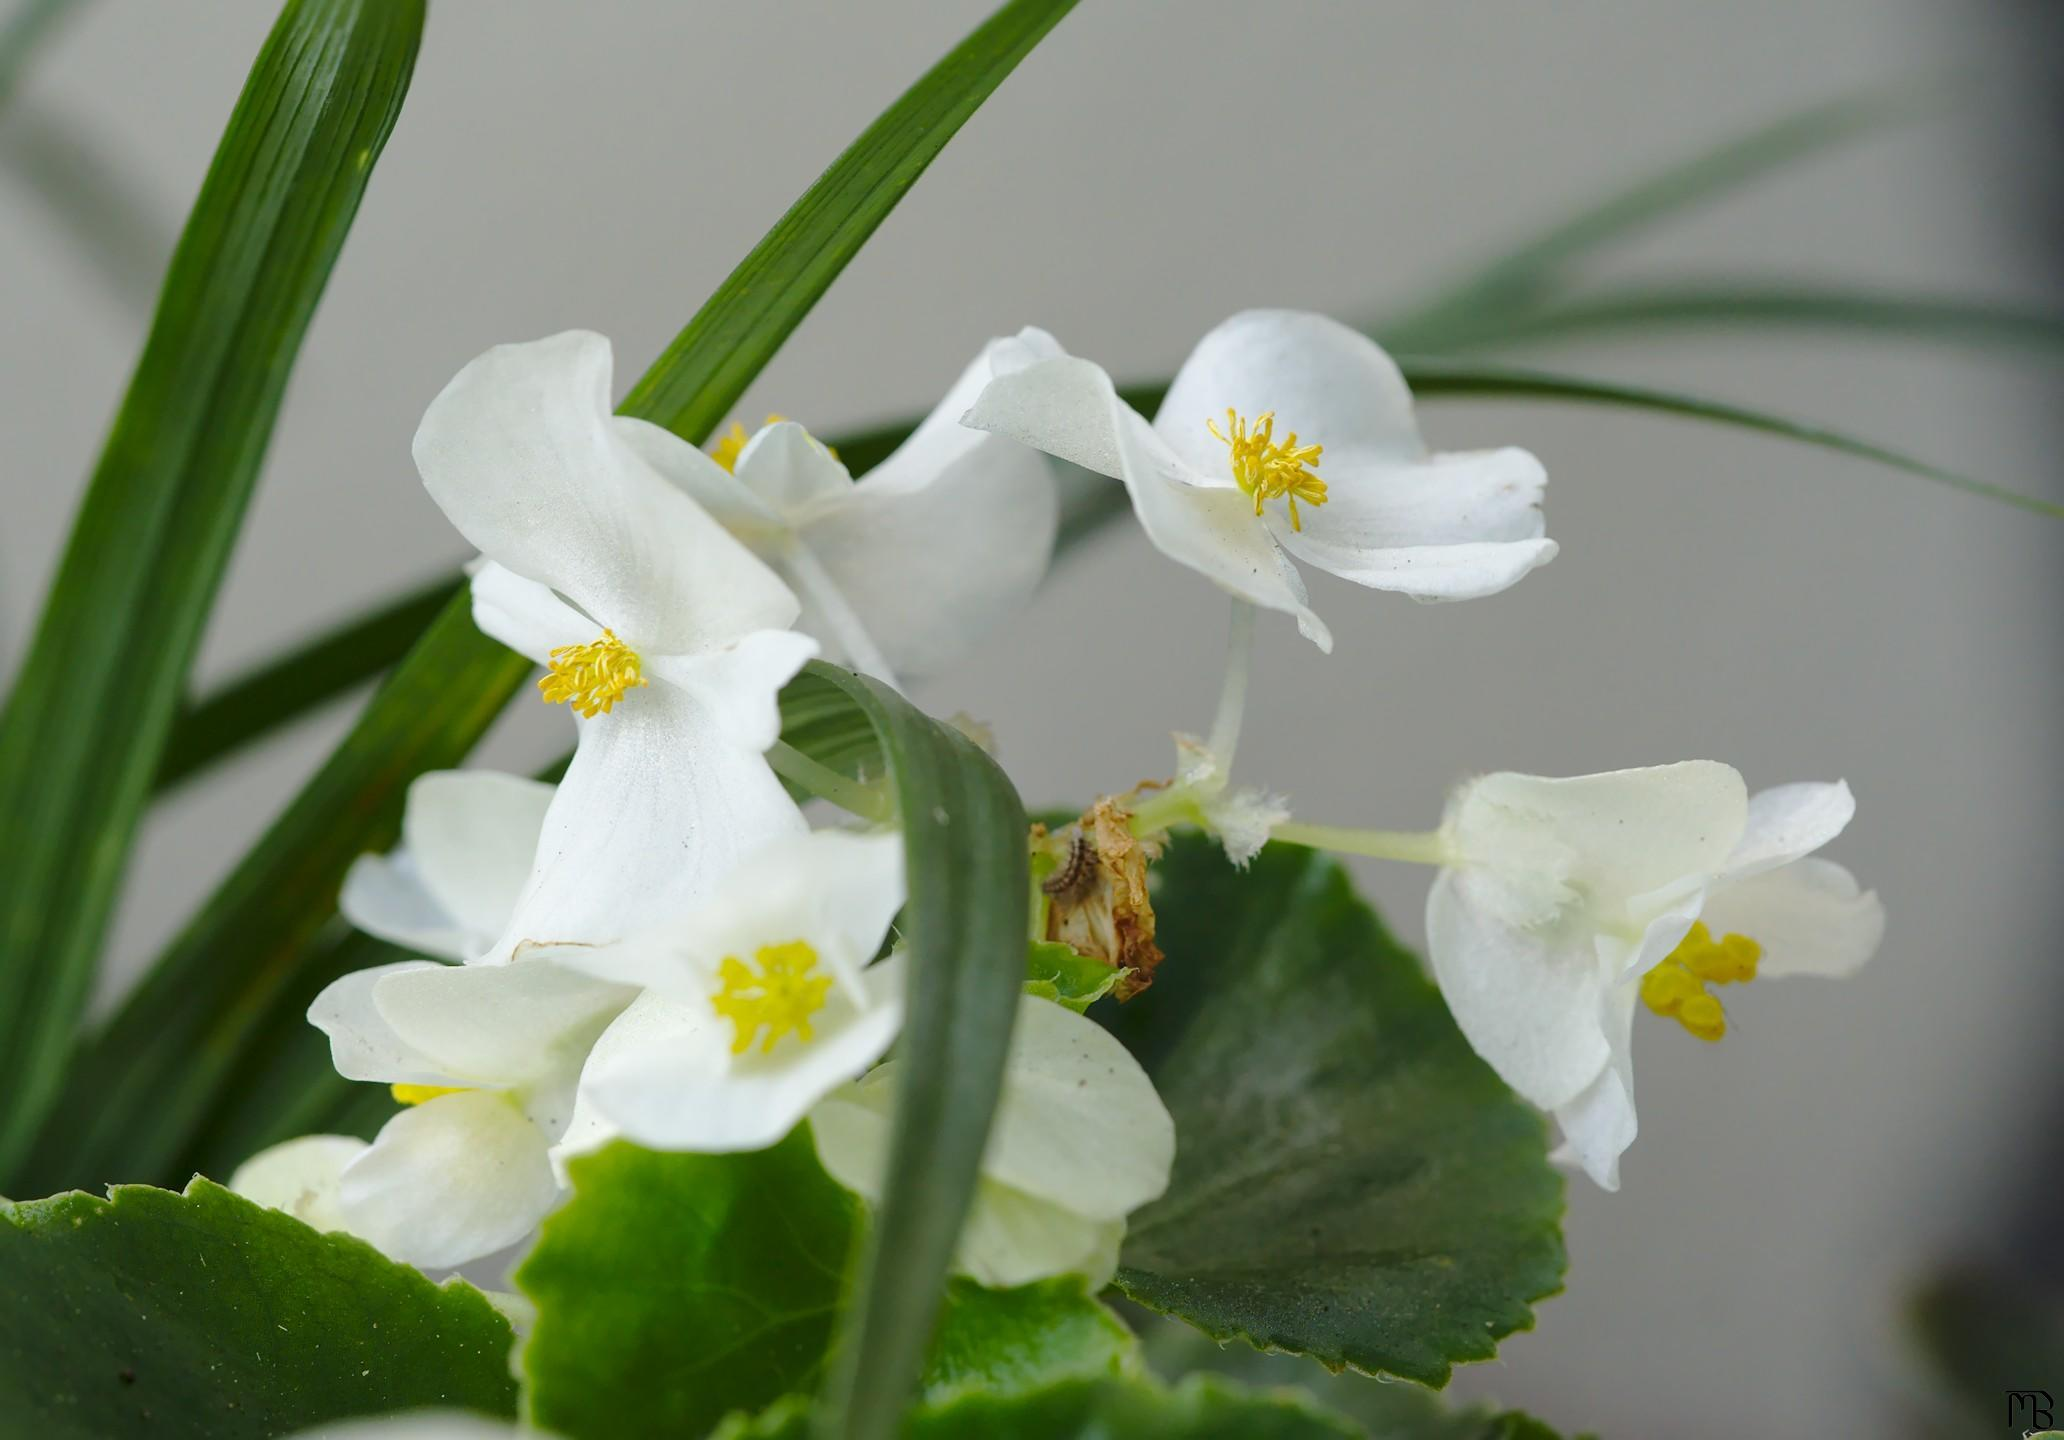 White flowers with yellow middles